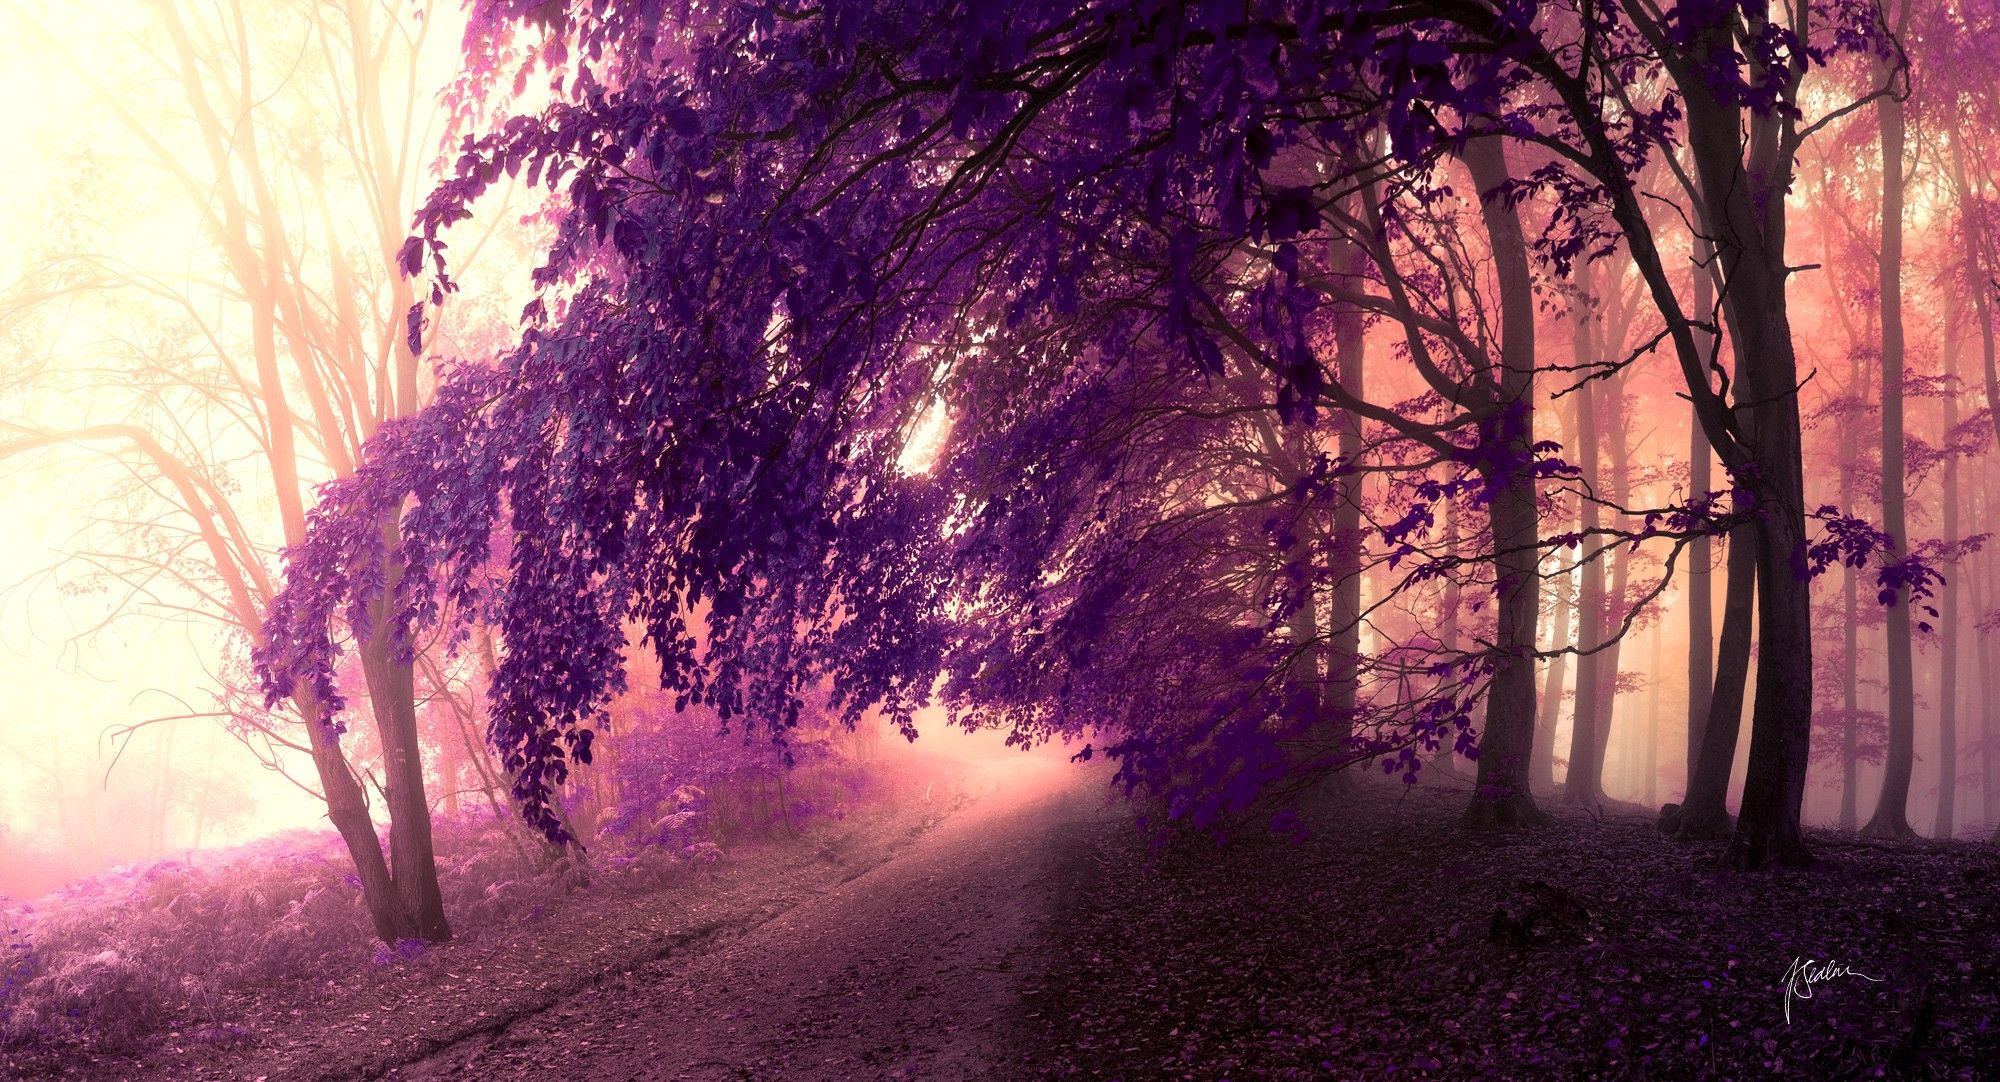 Forests: Nature Trees Forbidden Dreaming Purple Path Dreamer ...